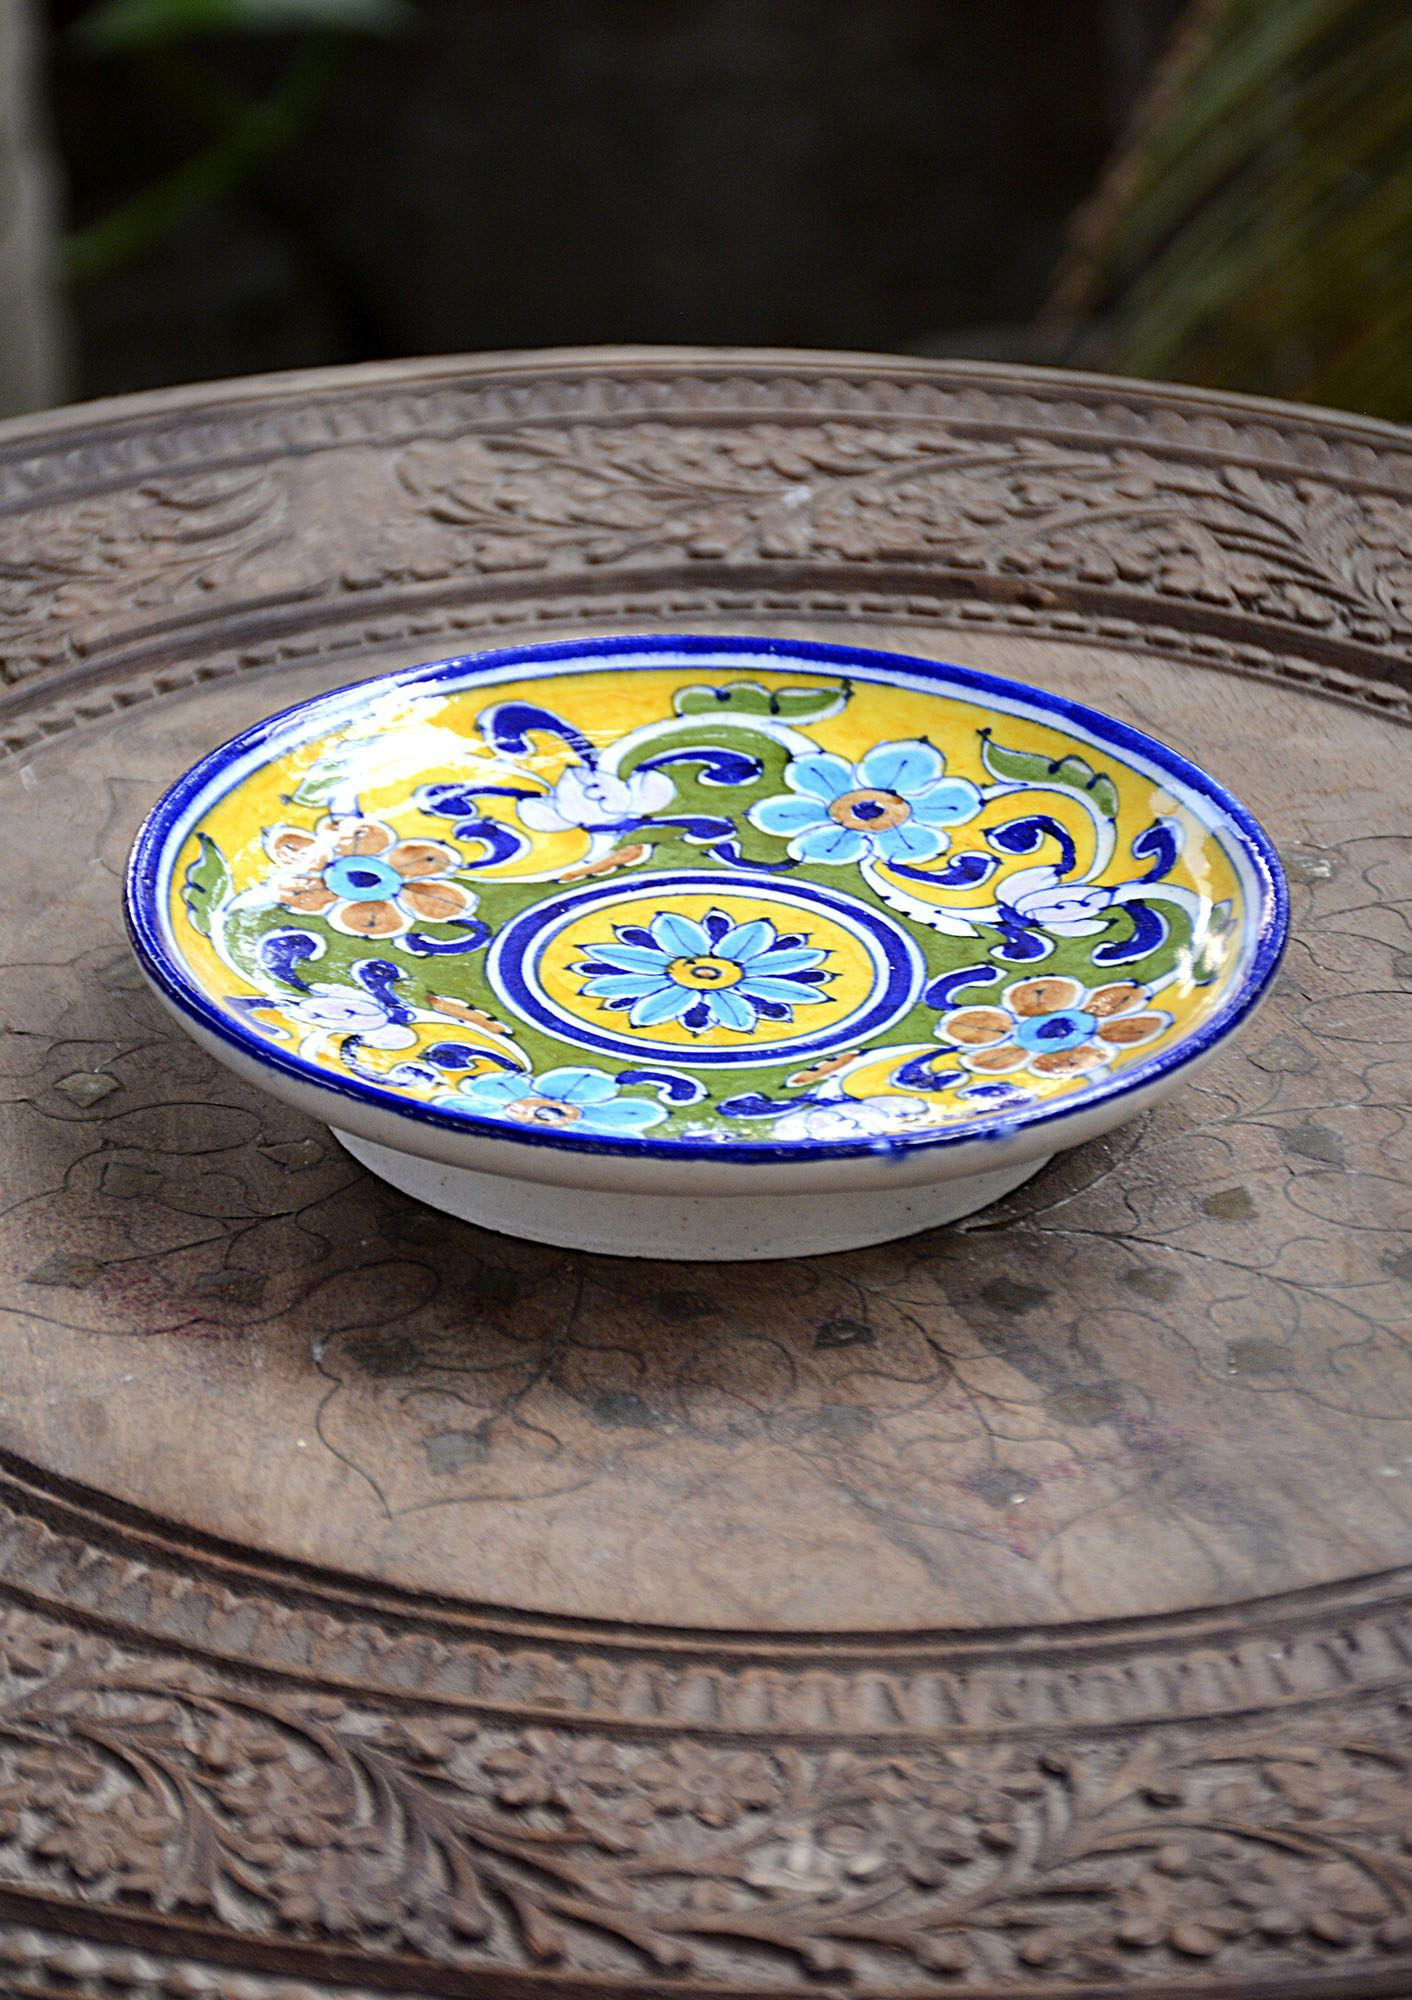 Hand Crafted Plates Dinning And Bath Bd This Handcrafted Oval Shape Plates Decorative Made From Ceramic This Plates Are Finis With Images Plates Handcraft Handmade Pottery